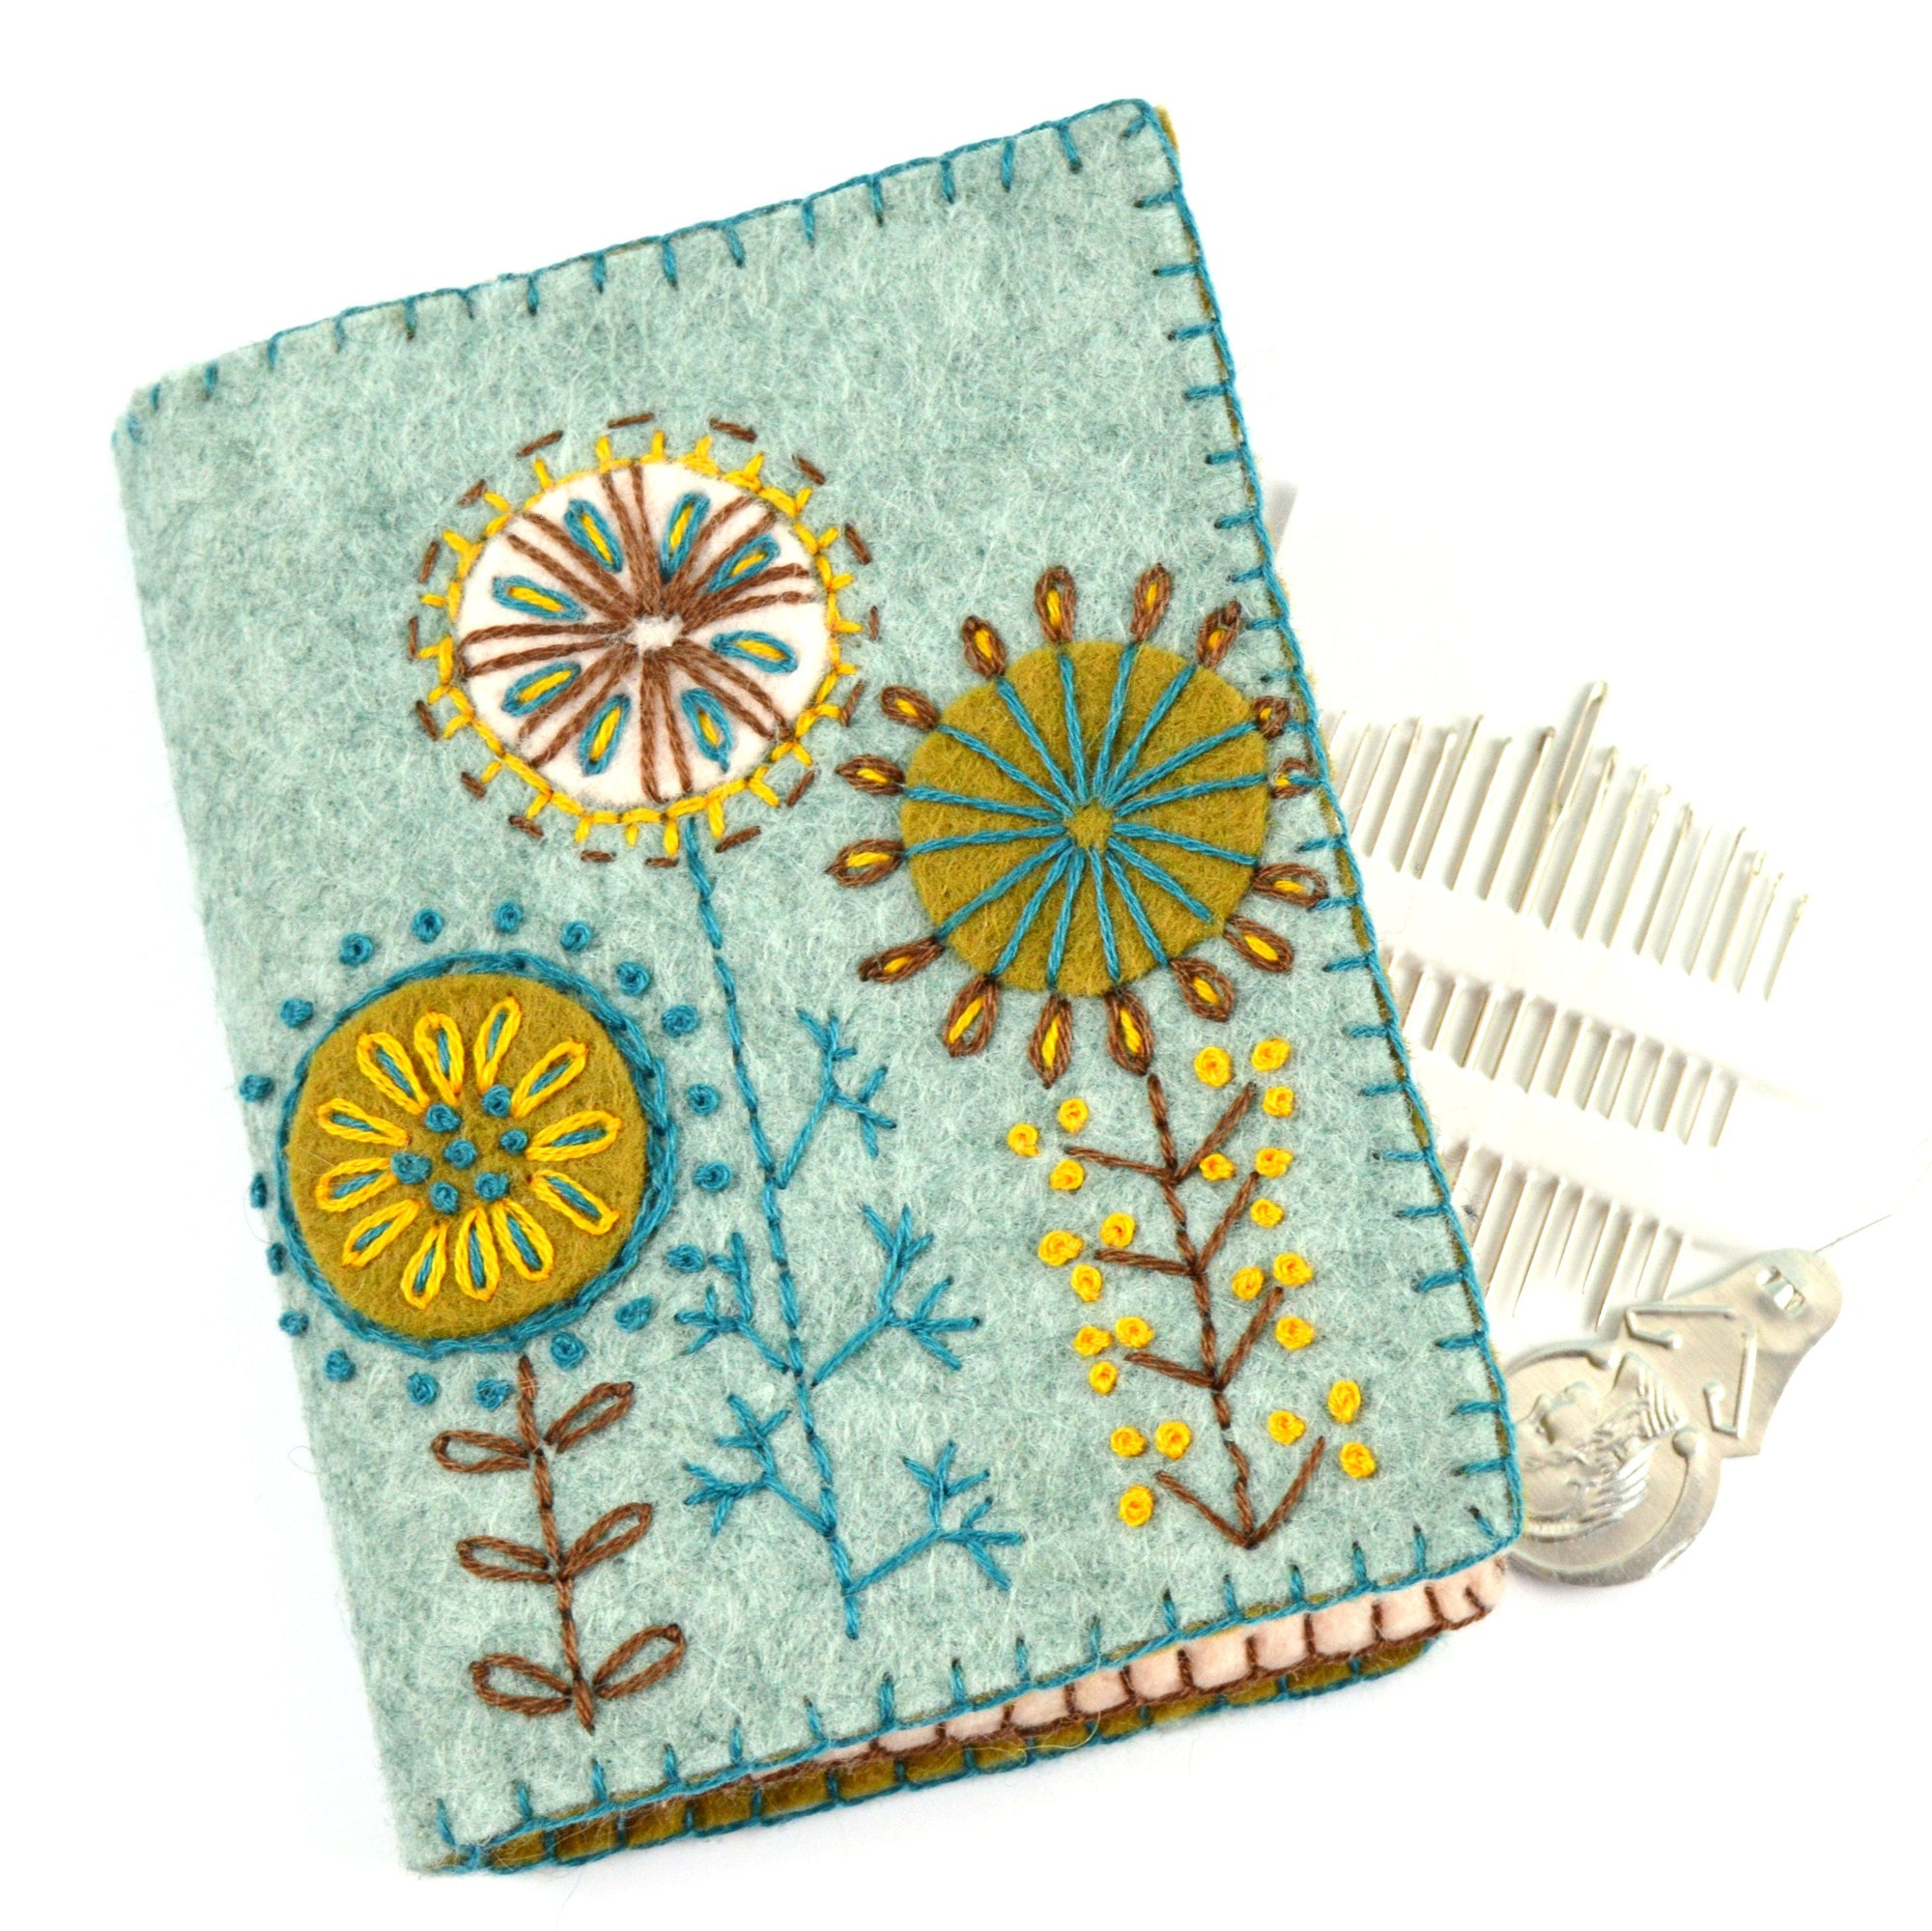 Corinne Lapierre Embroidery Sewing Kit - Needle Case with Flowers